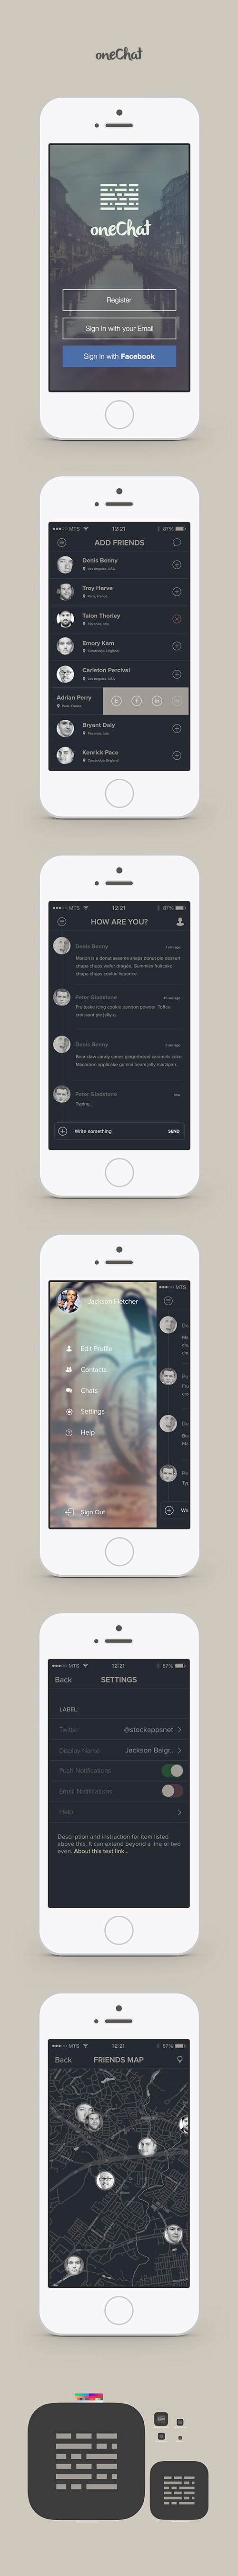 Amazing Mobile App UI Designs with Ultimate User Experience - 34